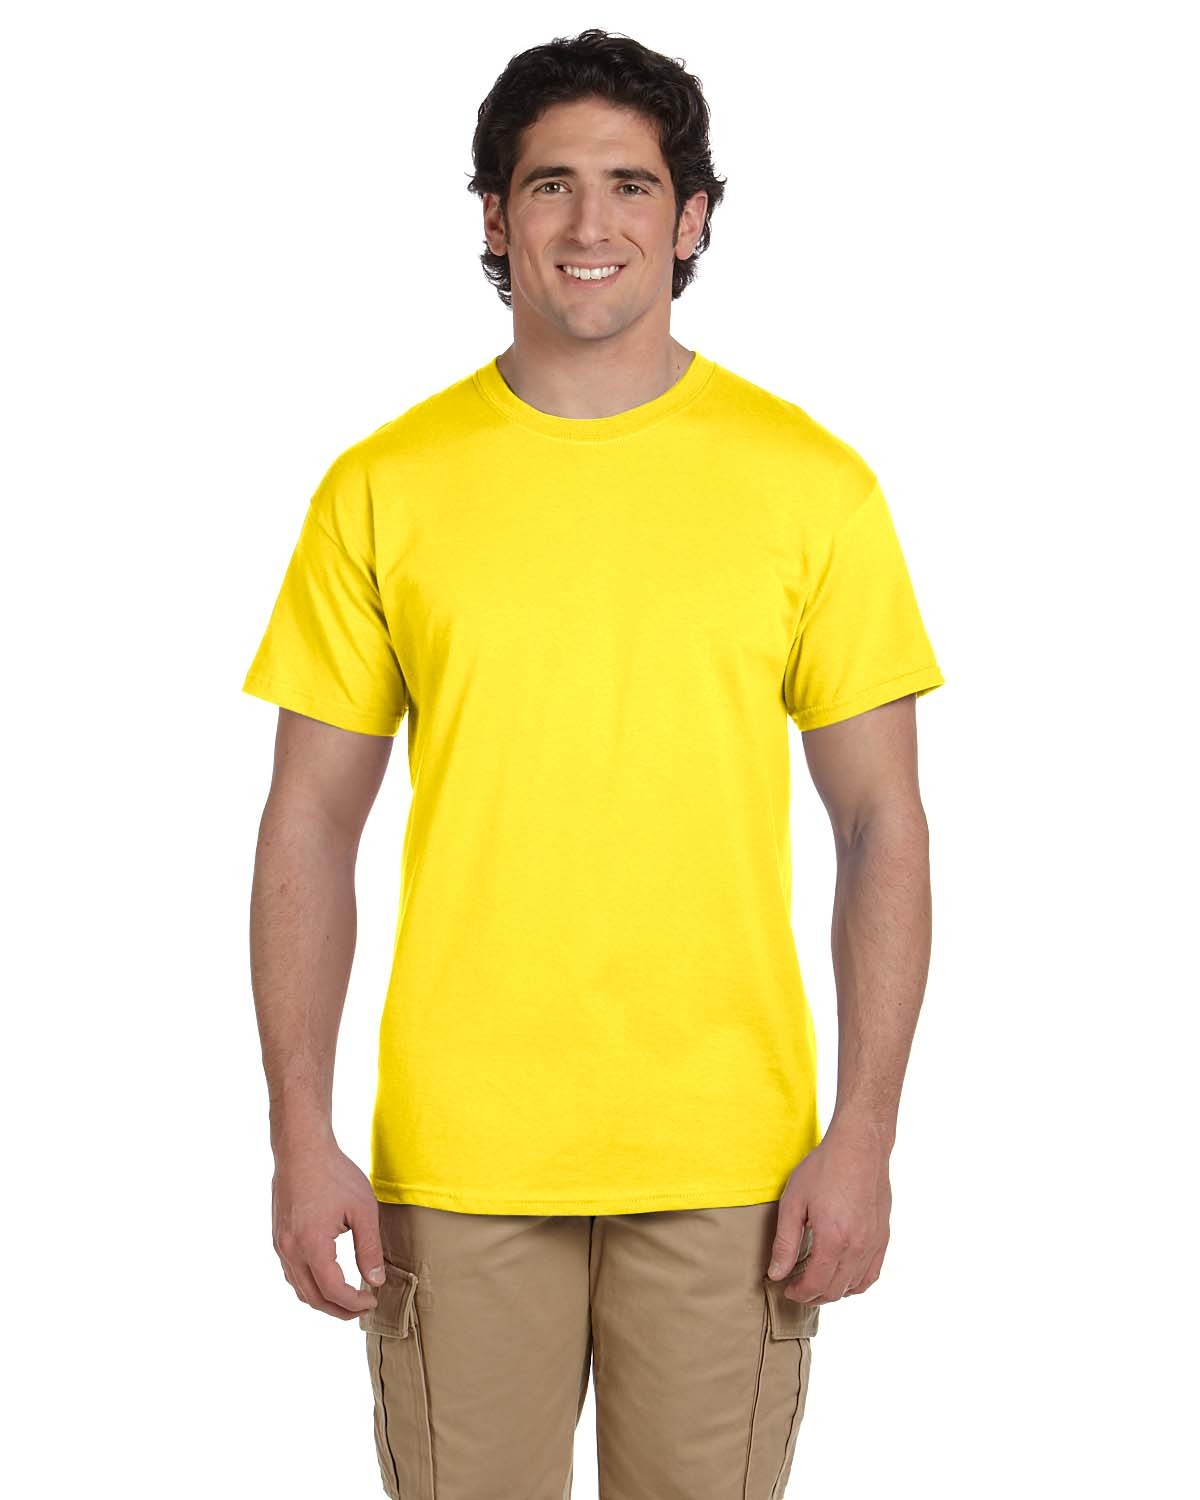 3931 Fruit of the Loom YELLOW